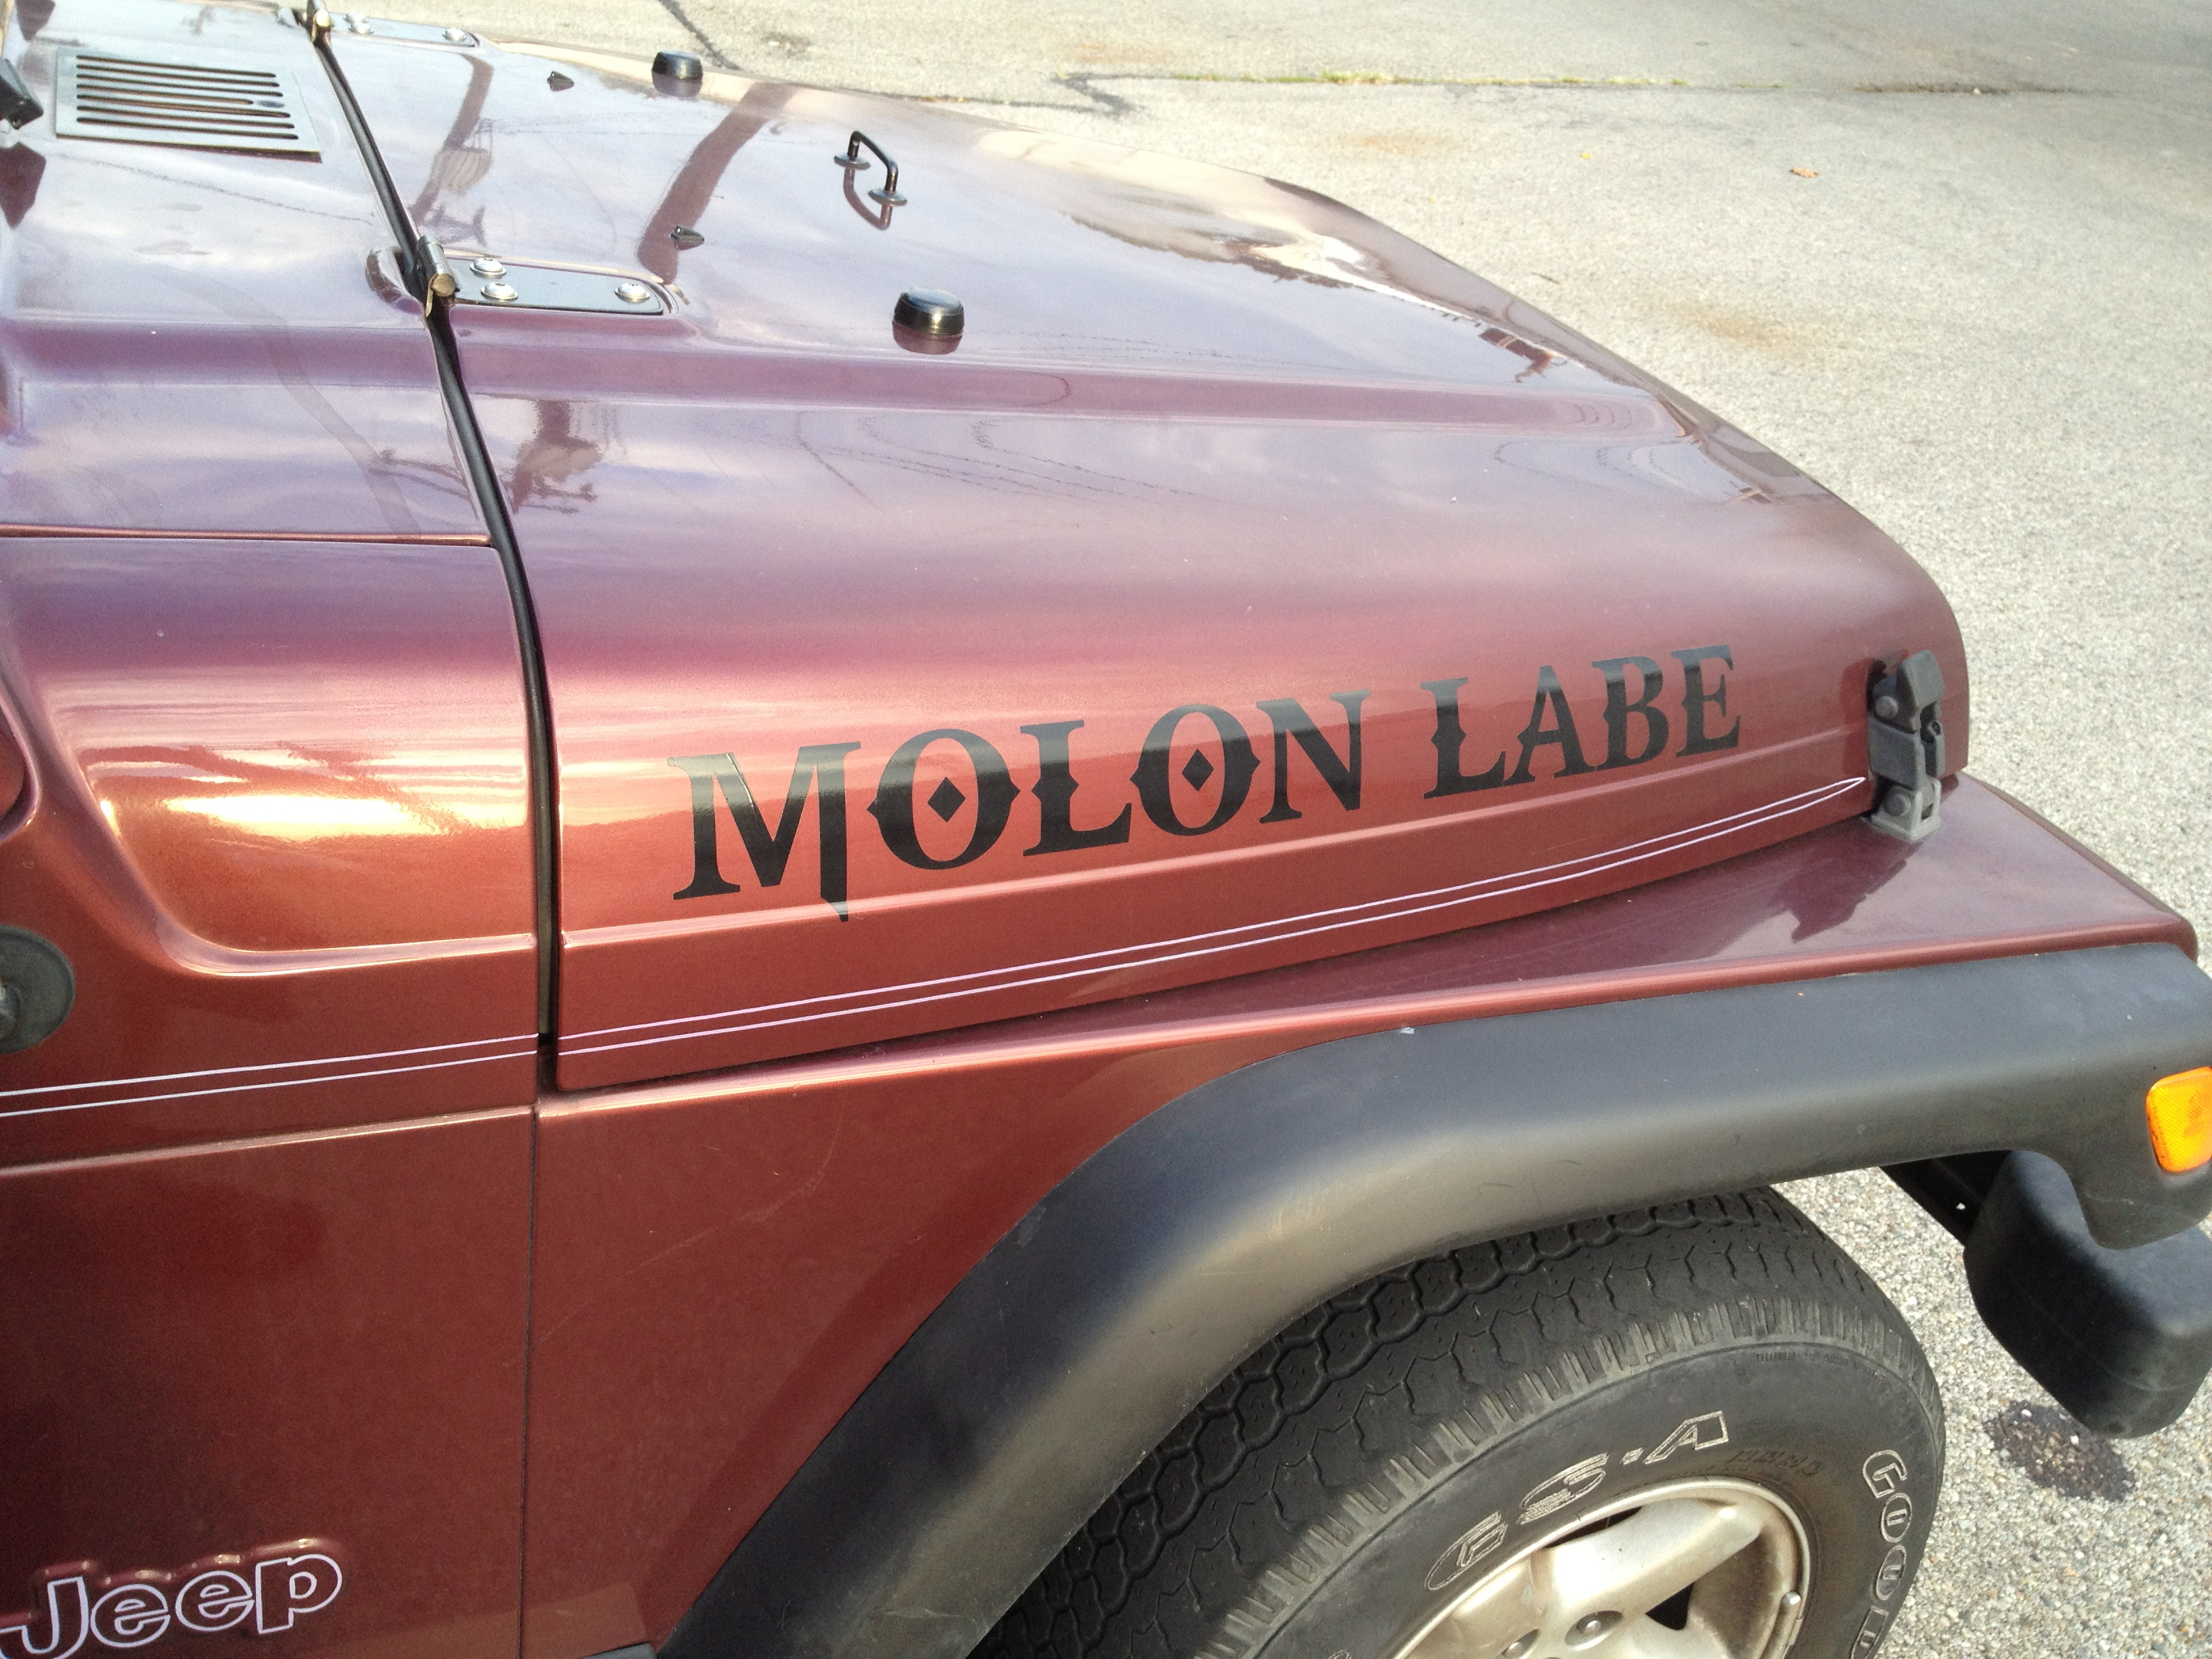 Molonlabe decal